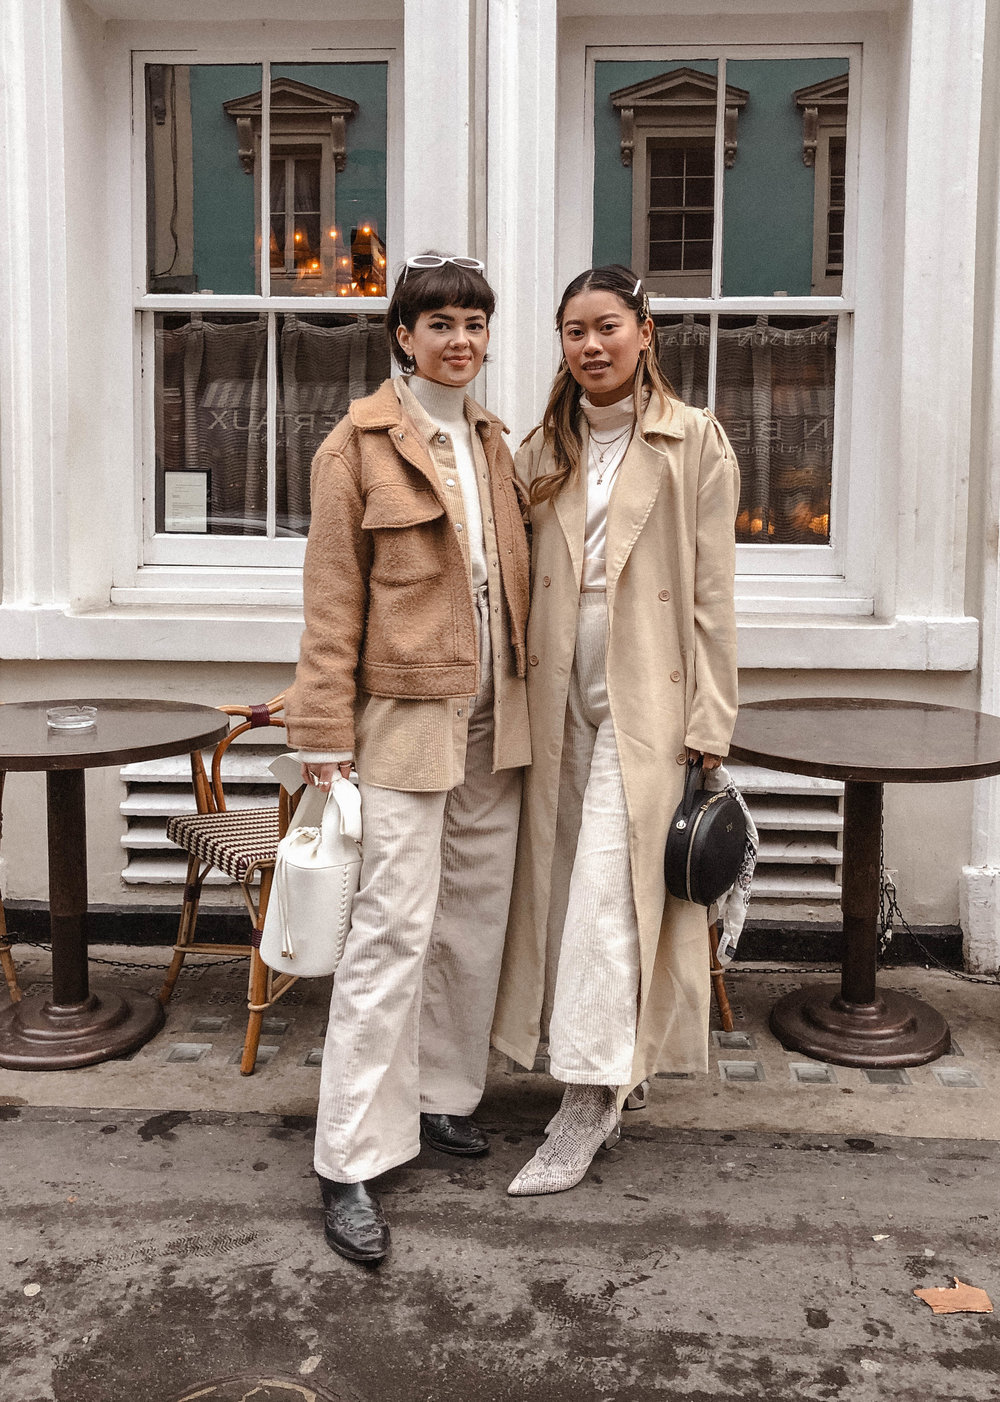 Chloe & I unintentionally matched our outfits on this day. Couldn't been any more perfect with the tones, fabrics and textures! -